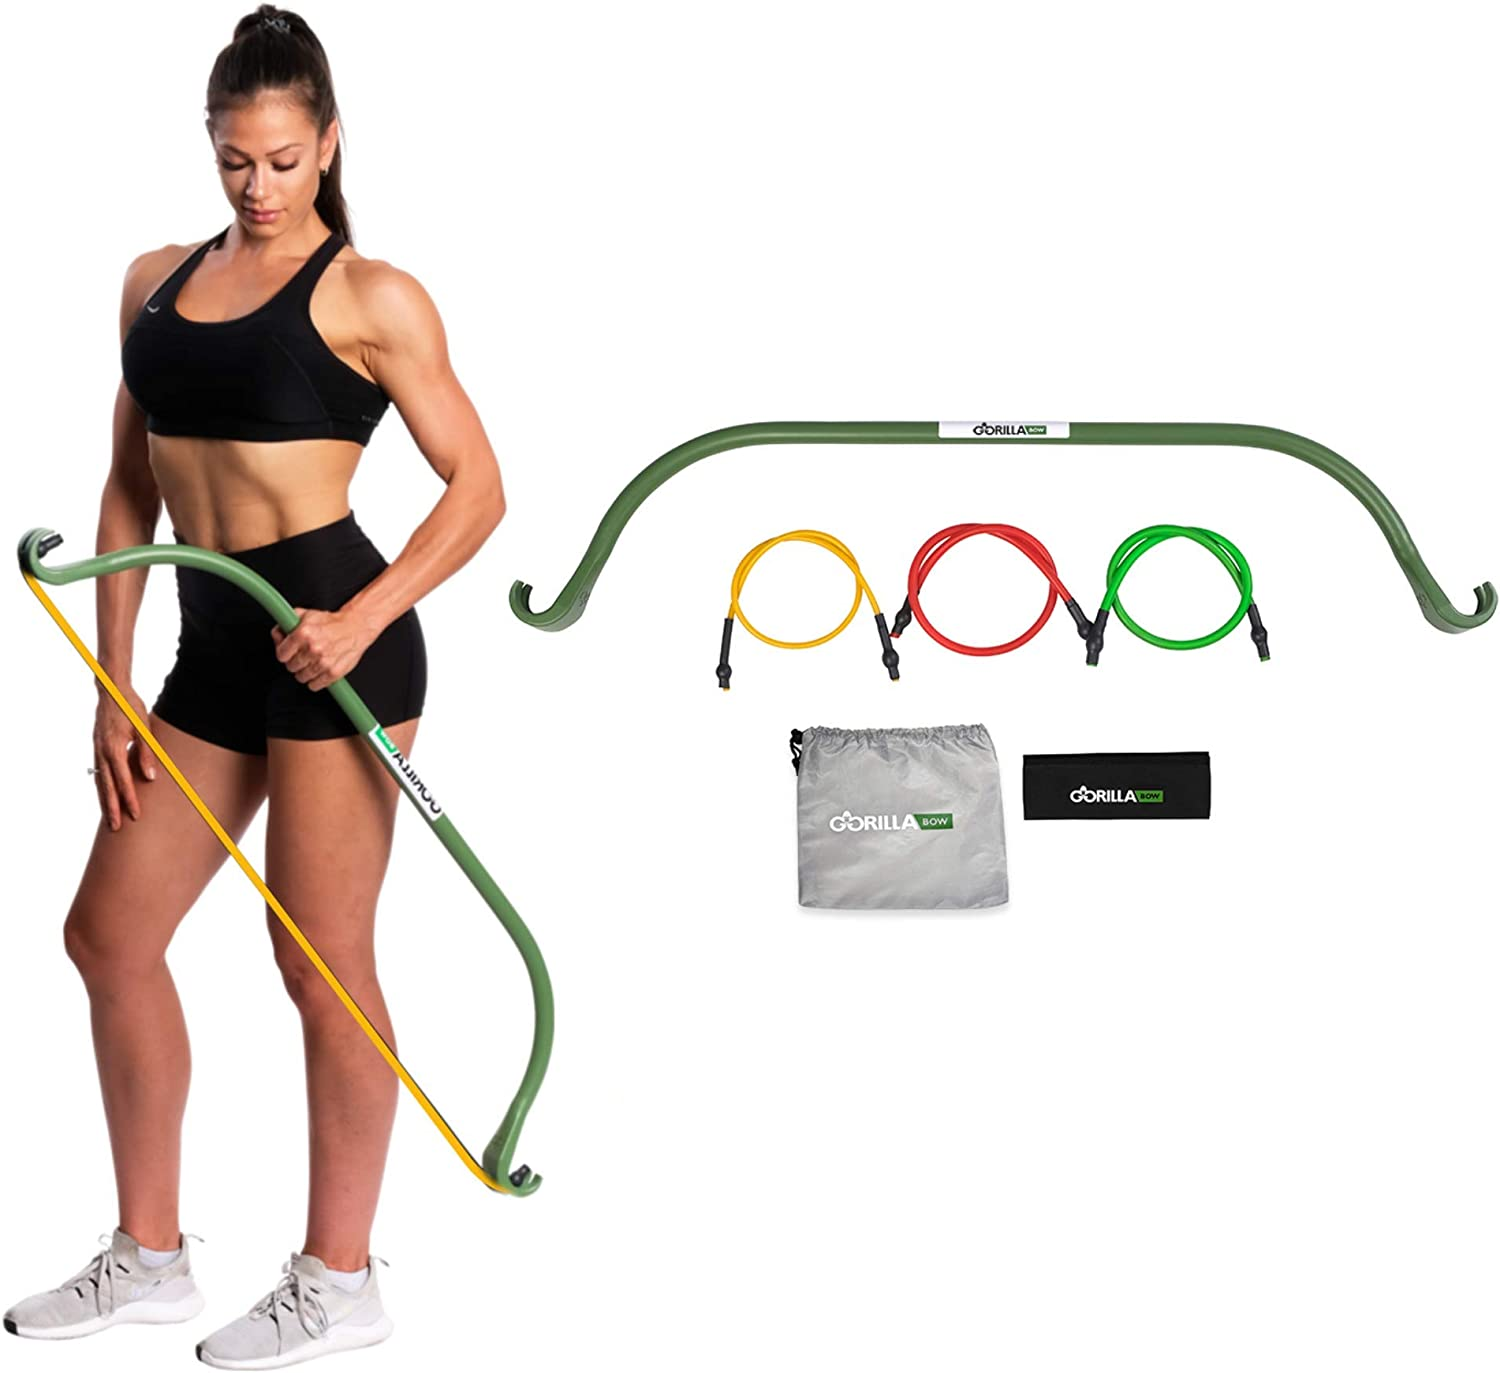 Lite Gorilla Bow Portable Home Quantity limited Gym Bands and At the price Bar Syst Resistance